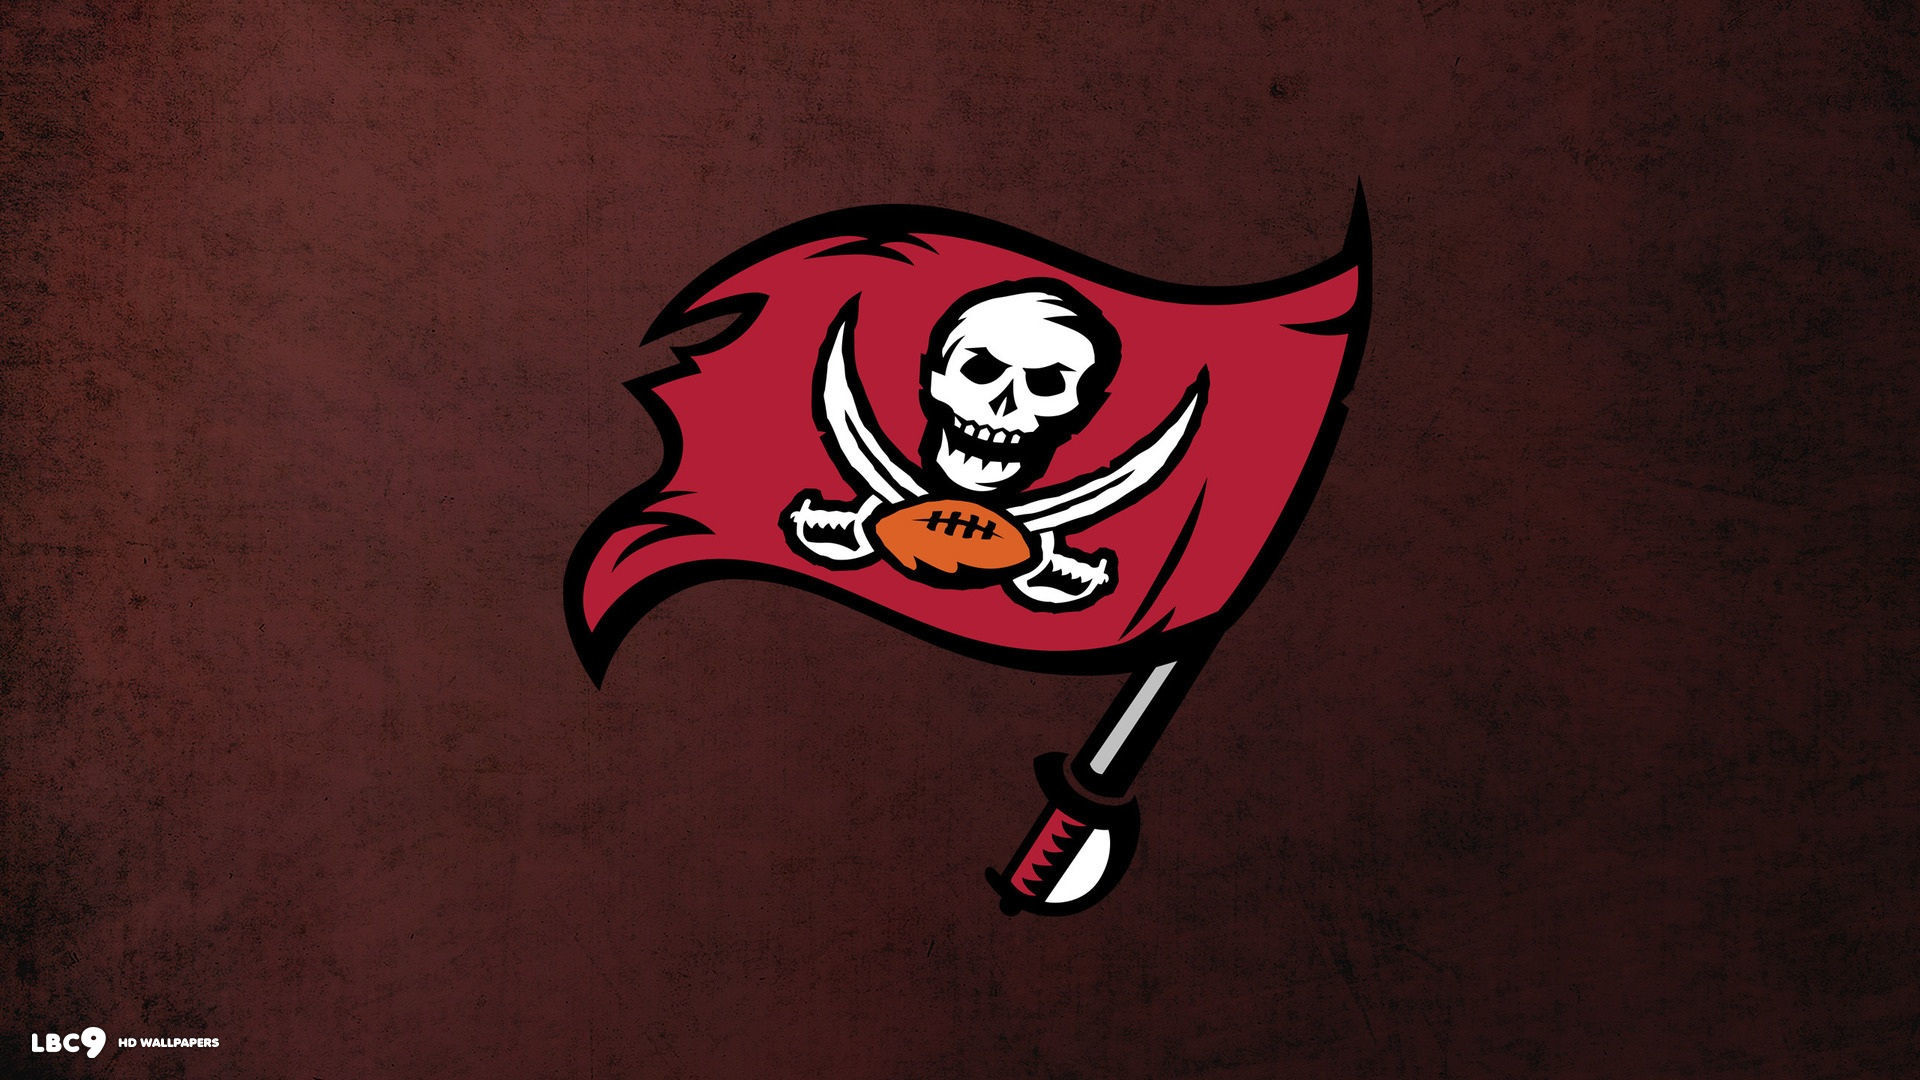 1920x1080 Tampa Bay Buccaneers Wallpapers (65 Wallpapers)